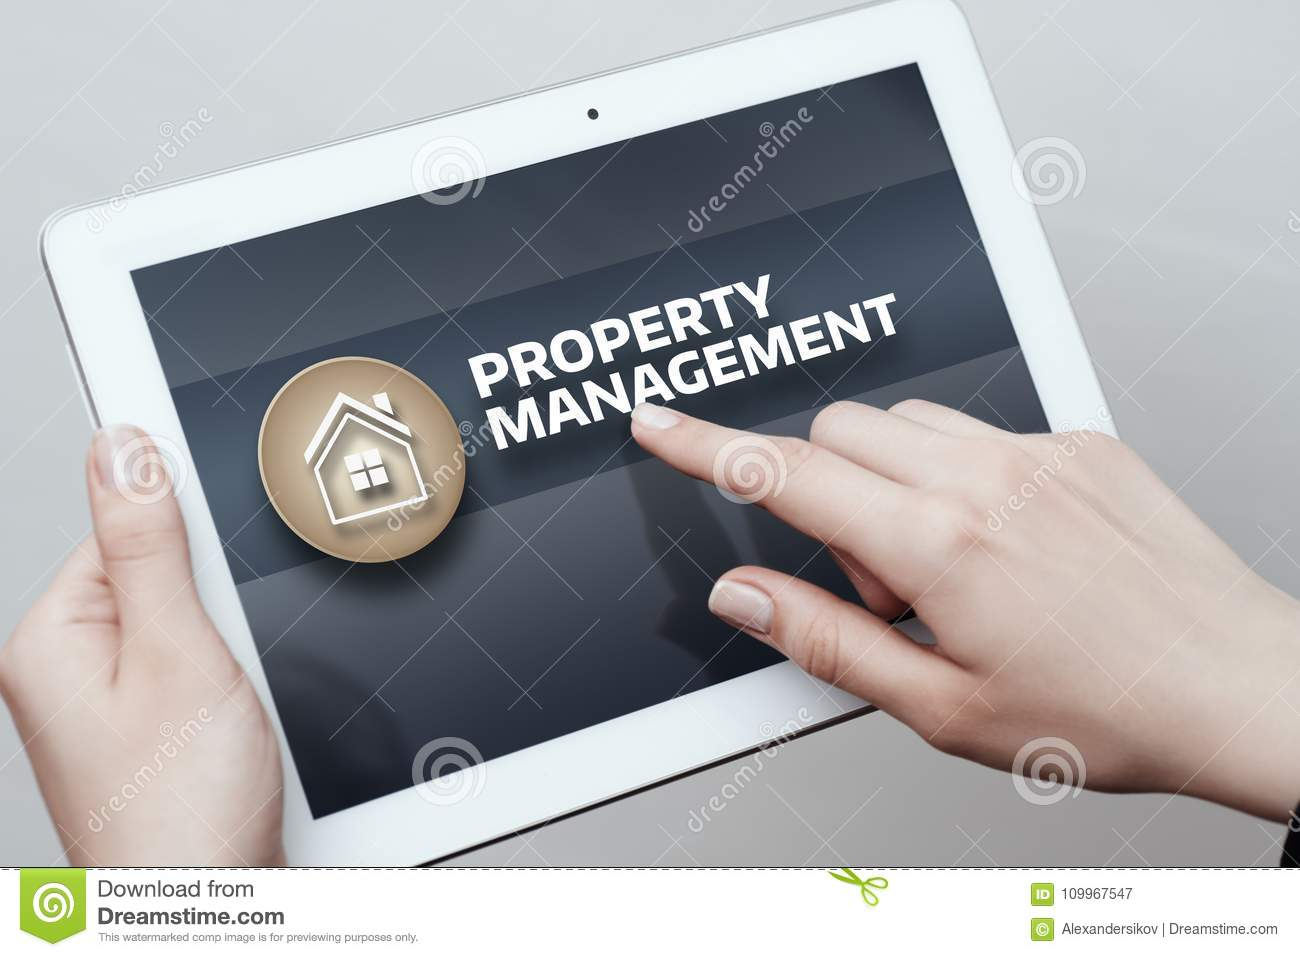 Property Management Real Estate Mortgage Rent Buy concept